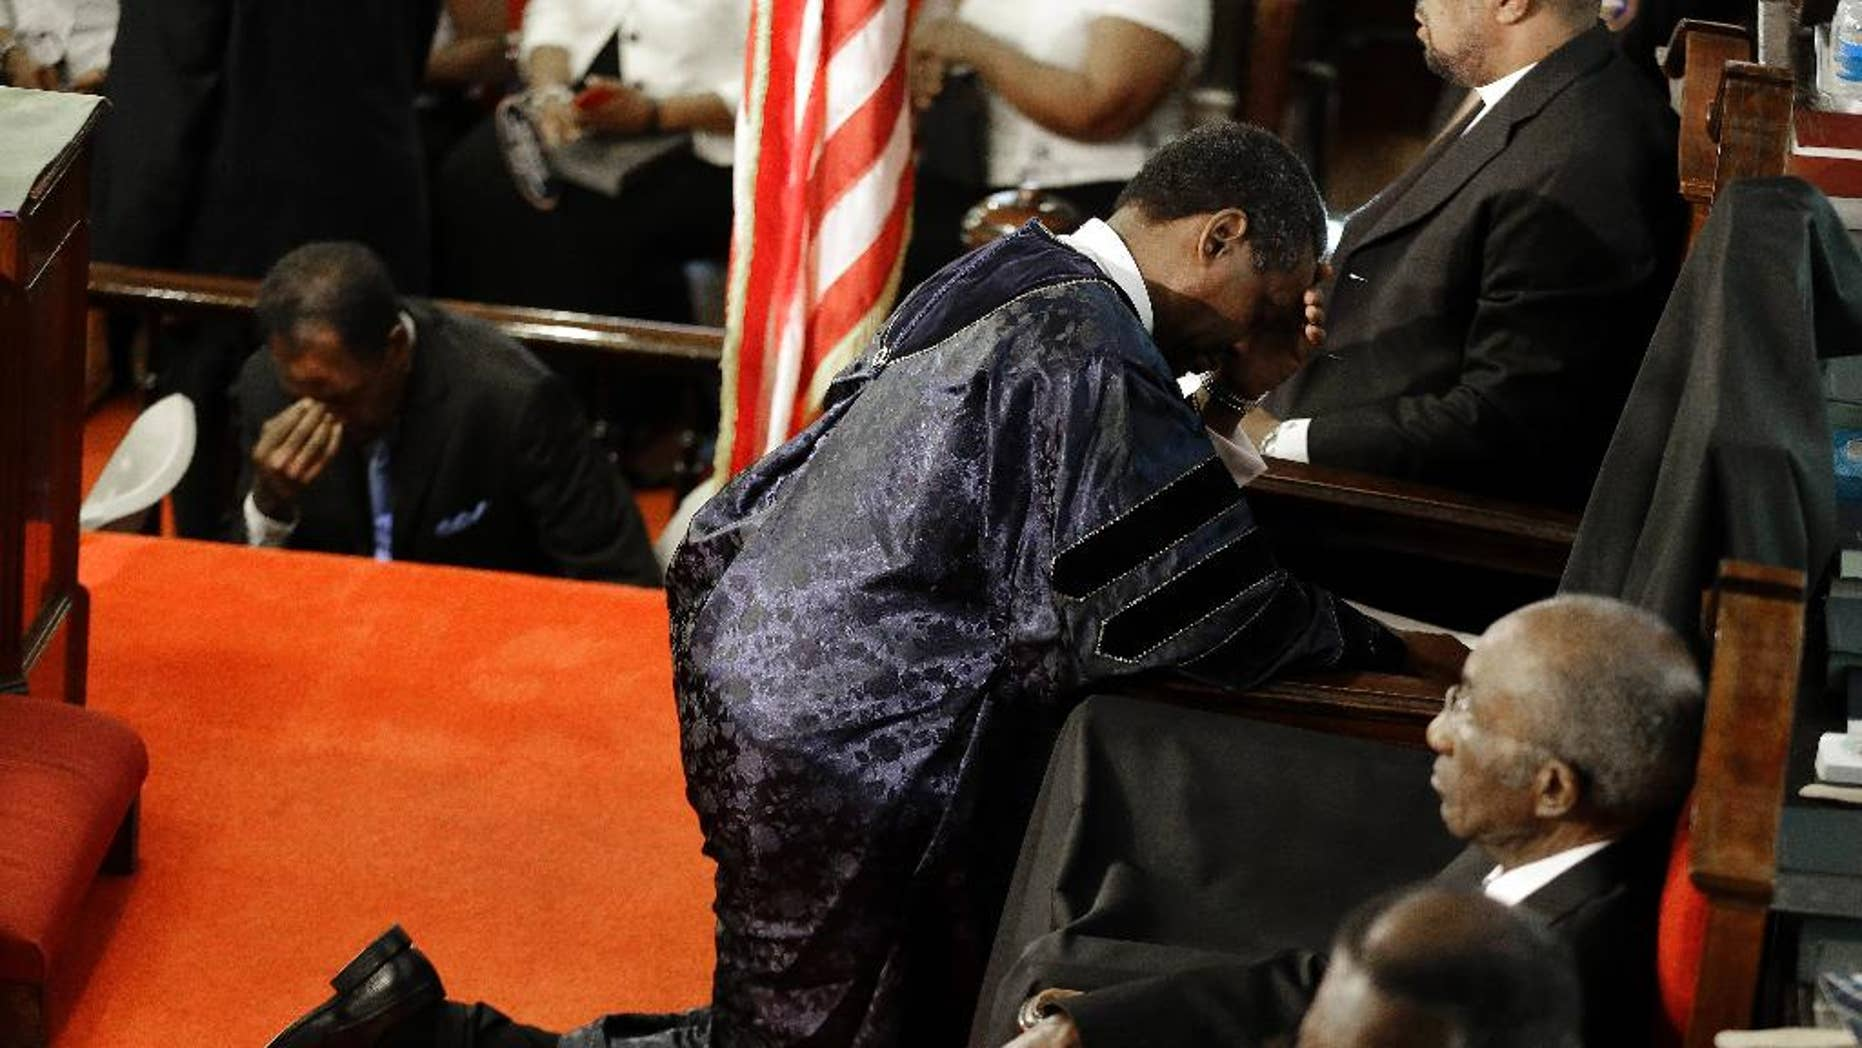 FILE - In this June 21, 2015, file photo, Rev. Norvel Goff prays at the empty seat of the Rev. Clementa Pinckney at the Emanuel A.M.E. Church four days after a mass shooting that claimed the lives of Pinckney and eight others in Charleston, S.C. Some family members of those killed in the church shooting have said they forgive the man who's been charged. But others in the African-American community say offering forgiveness so quickly may not be the best idea. (AP Photo/David Goldman, Pool, File)